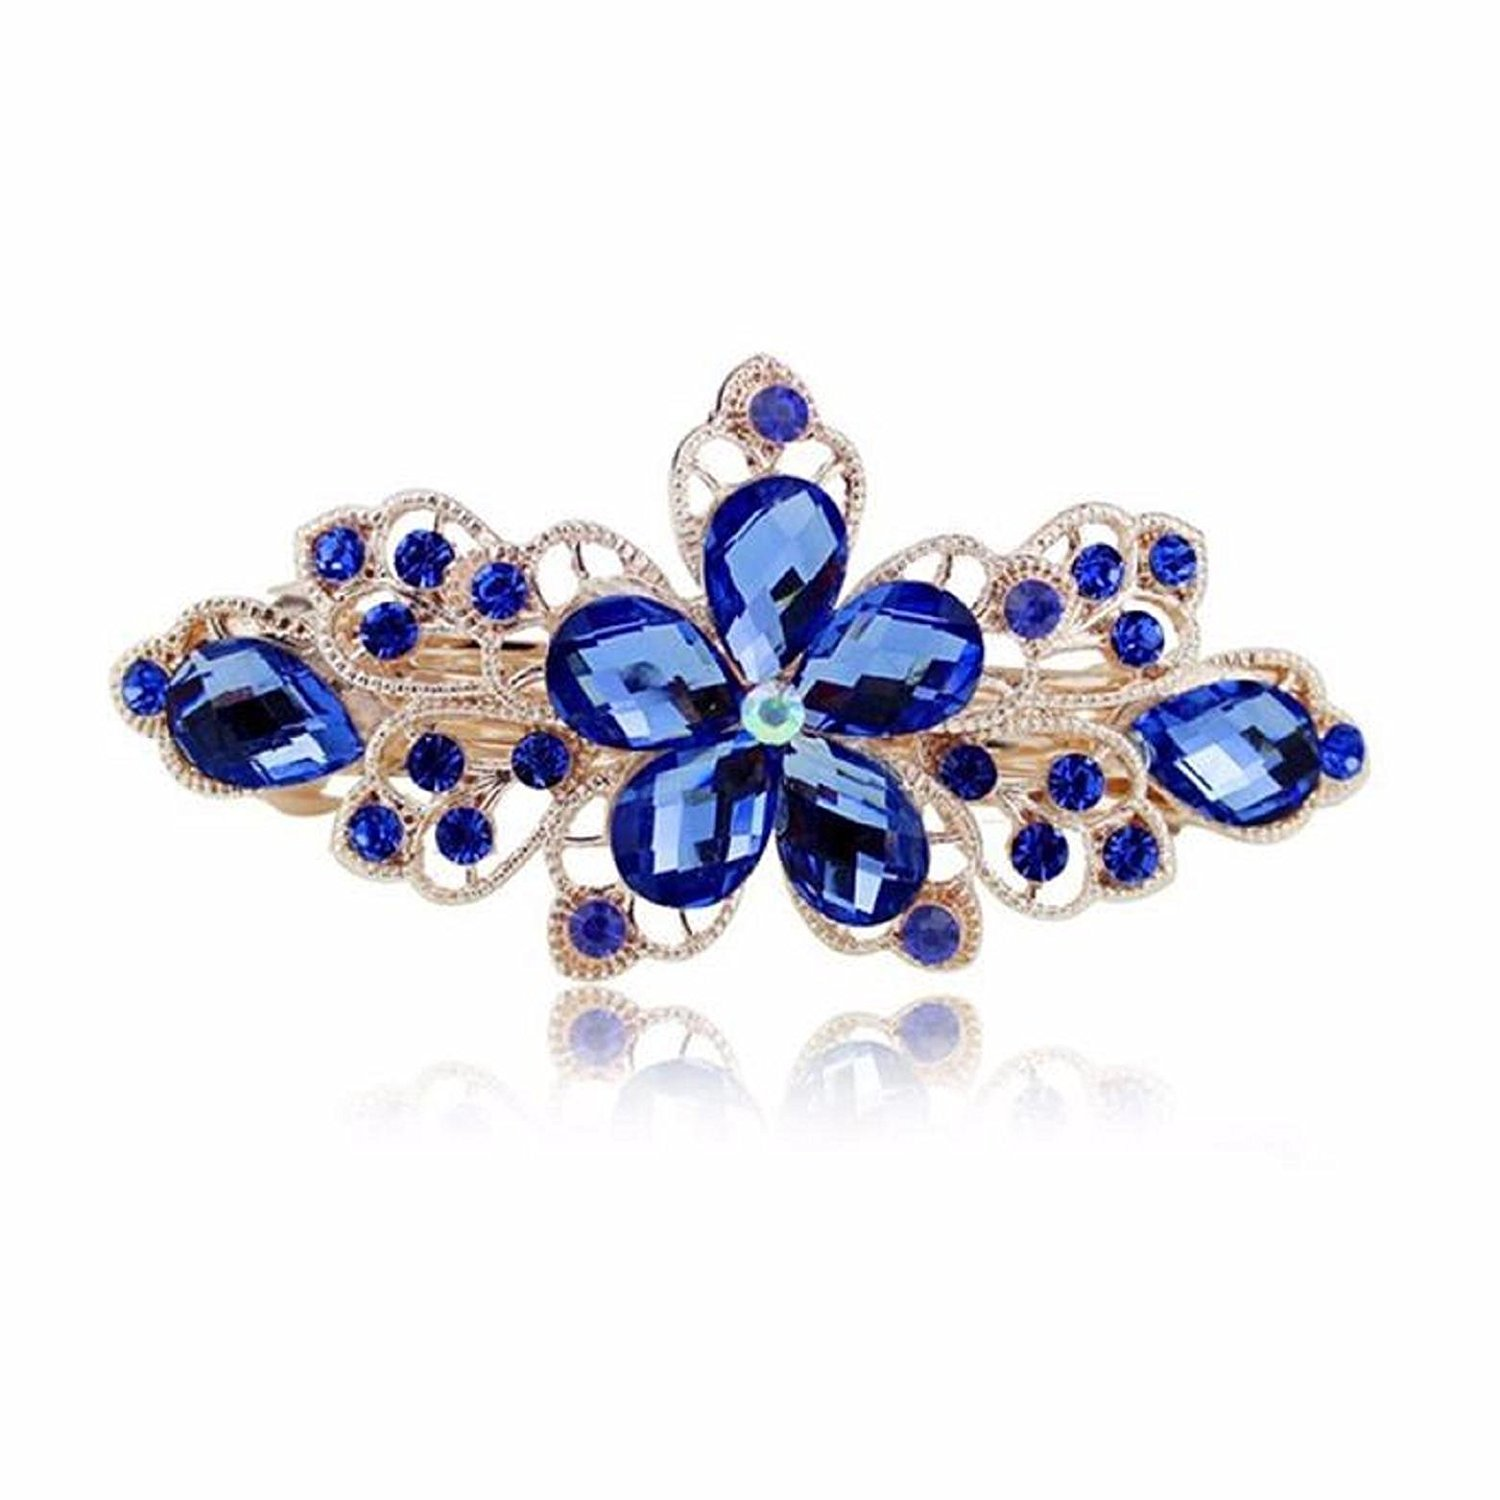 Sankuwen Flower Design Rhinestone Hairpin Clip Accessories (Sky Blue)